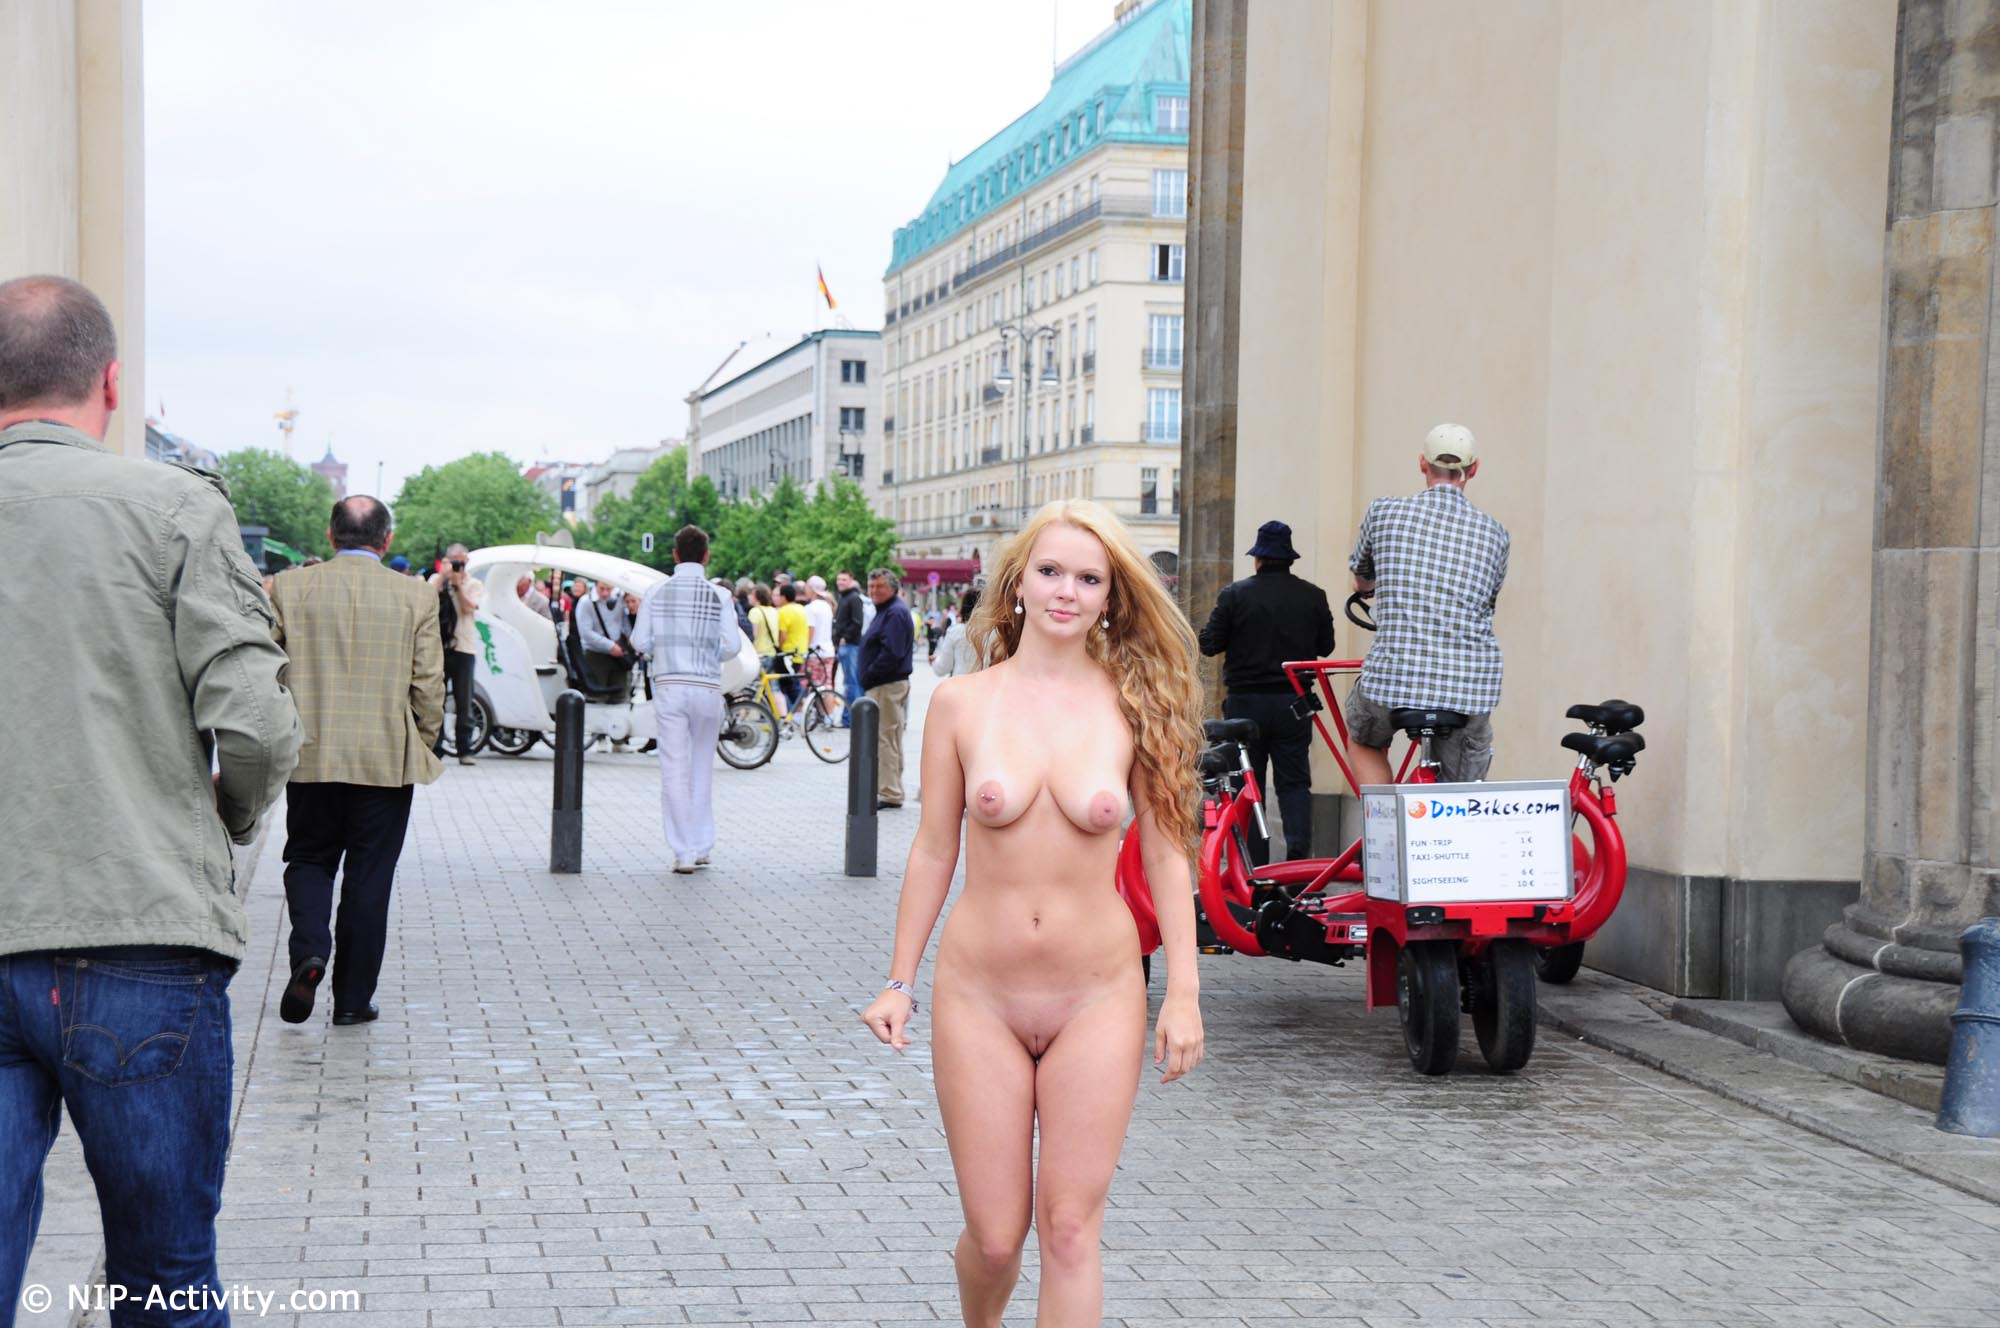 Nip activity in nude public